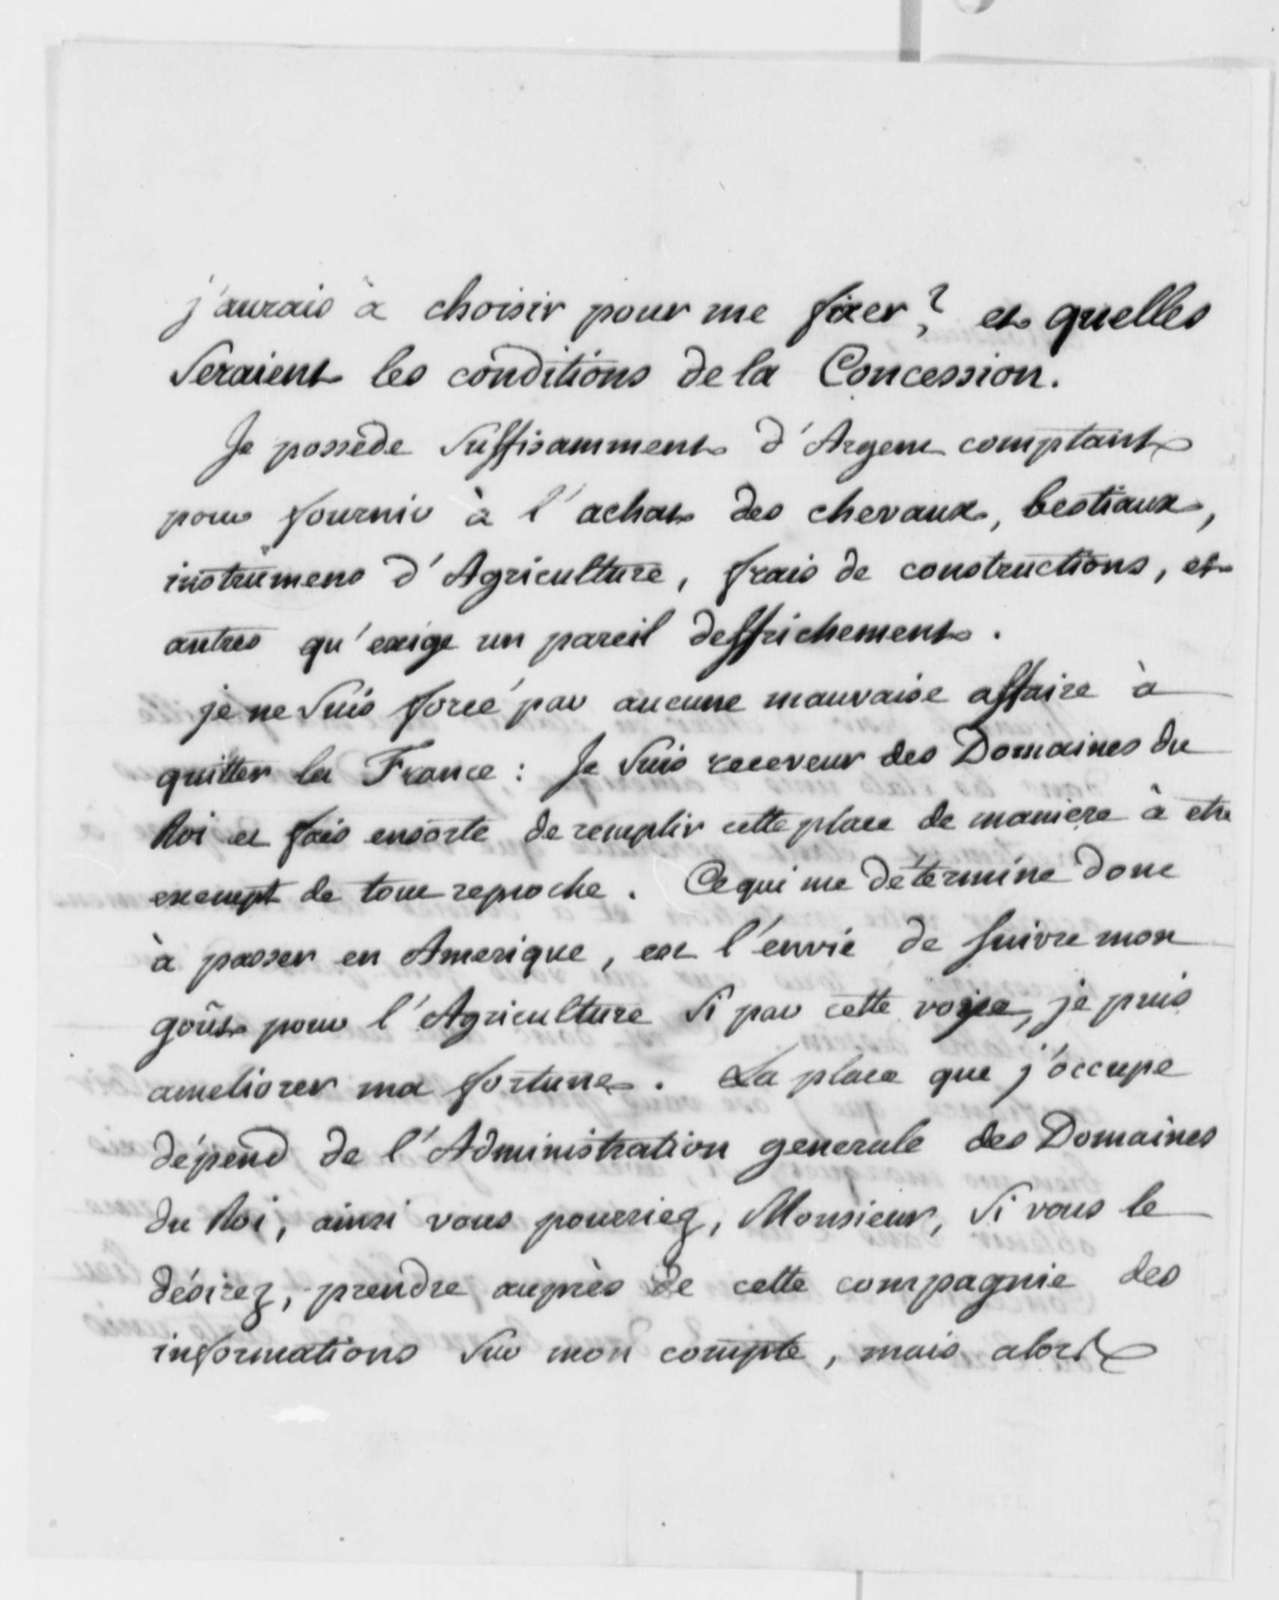 Gallimard to Thomas Jefferson, July 2, 1786, in French